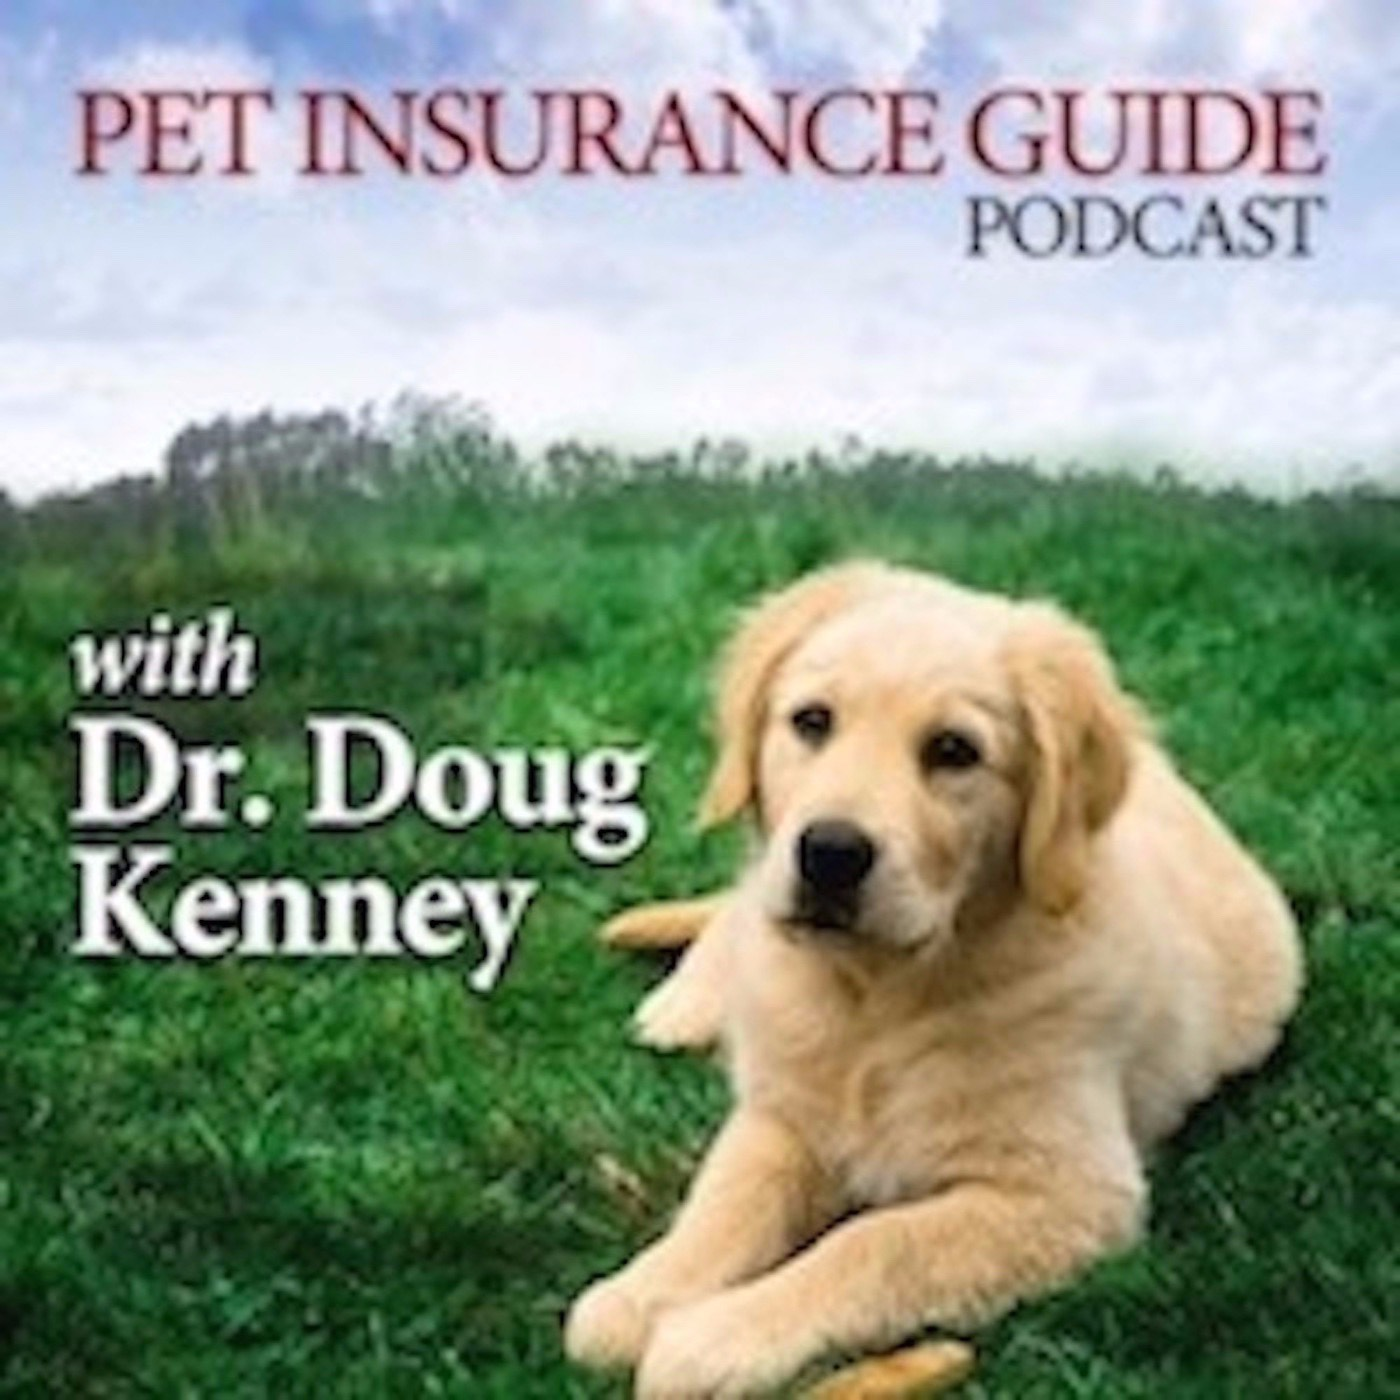 Pet Insurance Guide Podcast show art